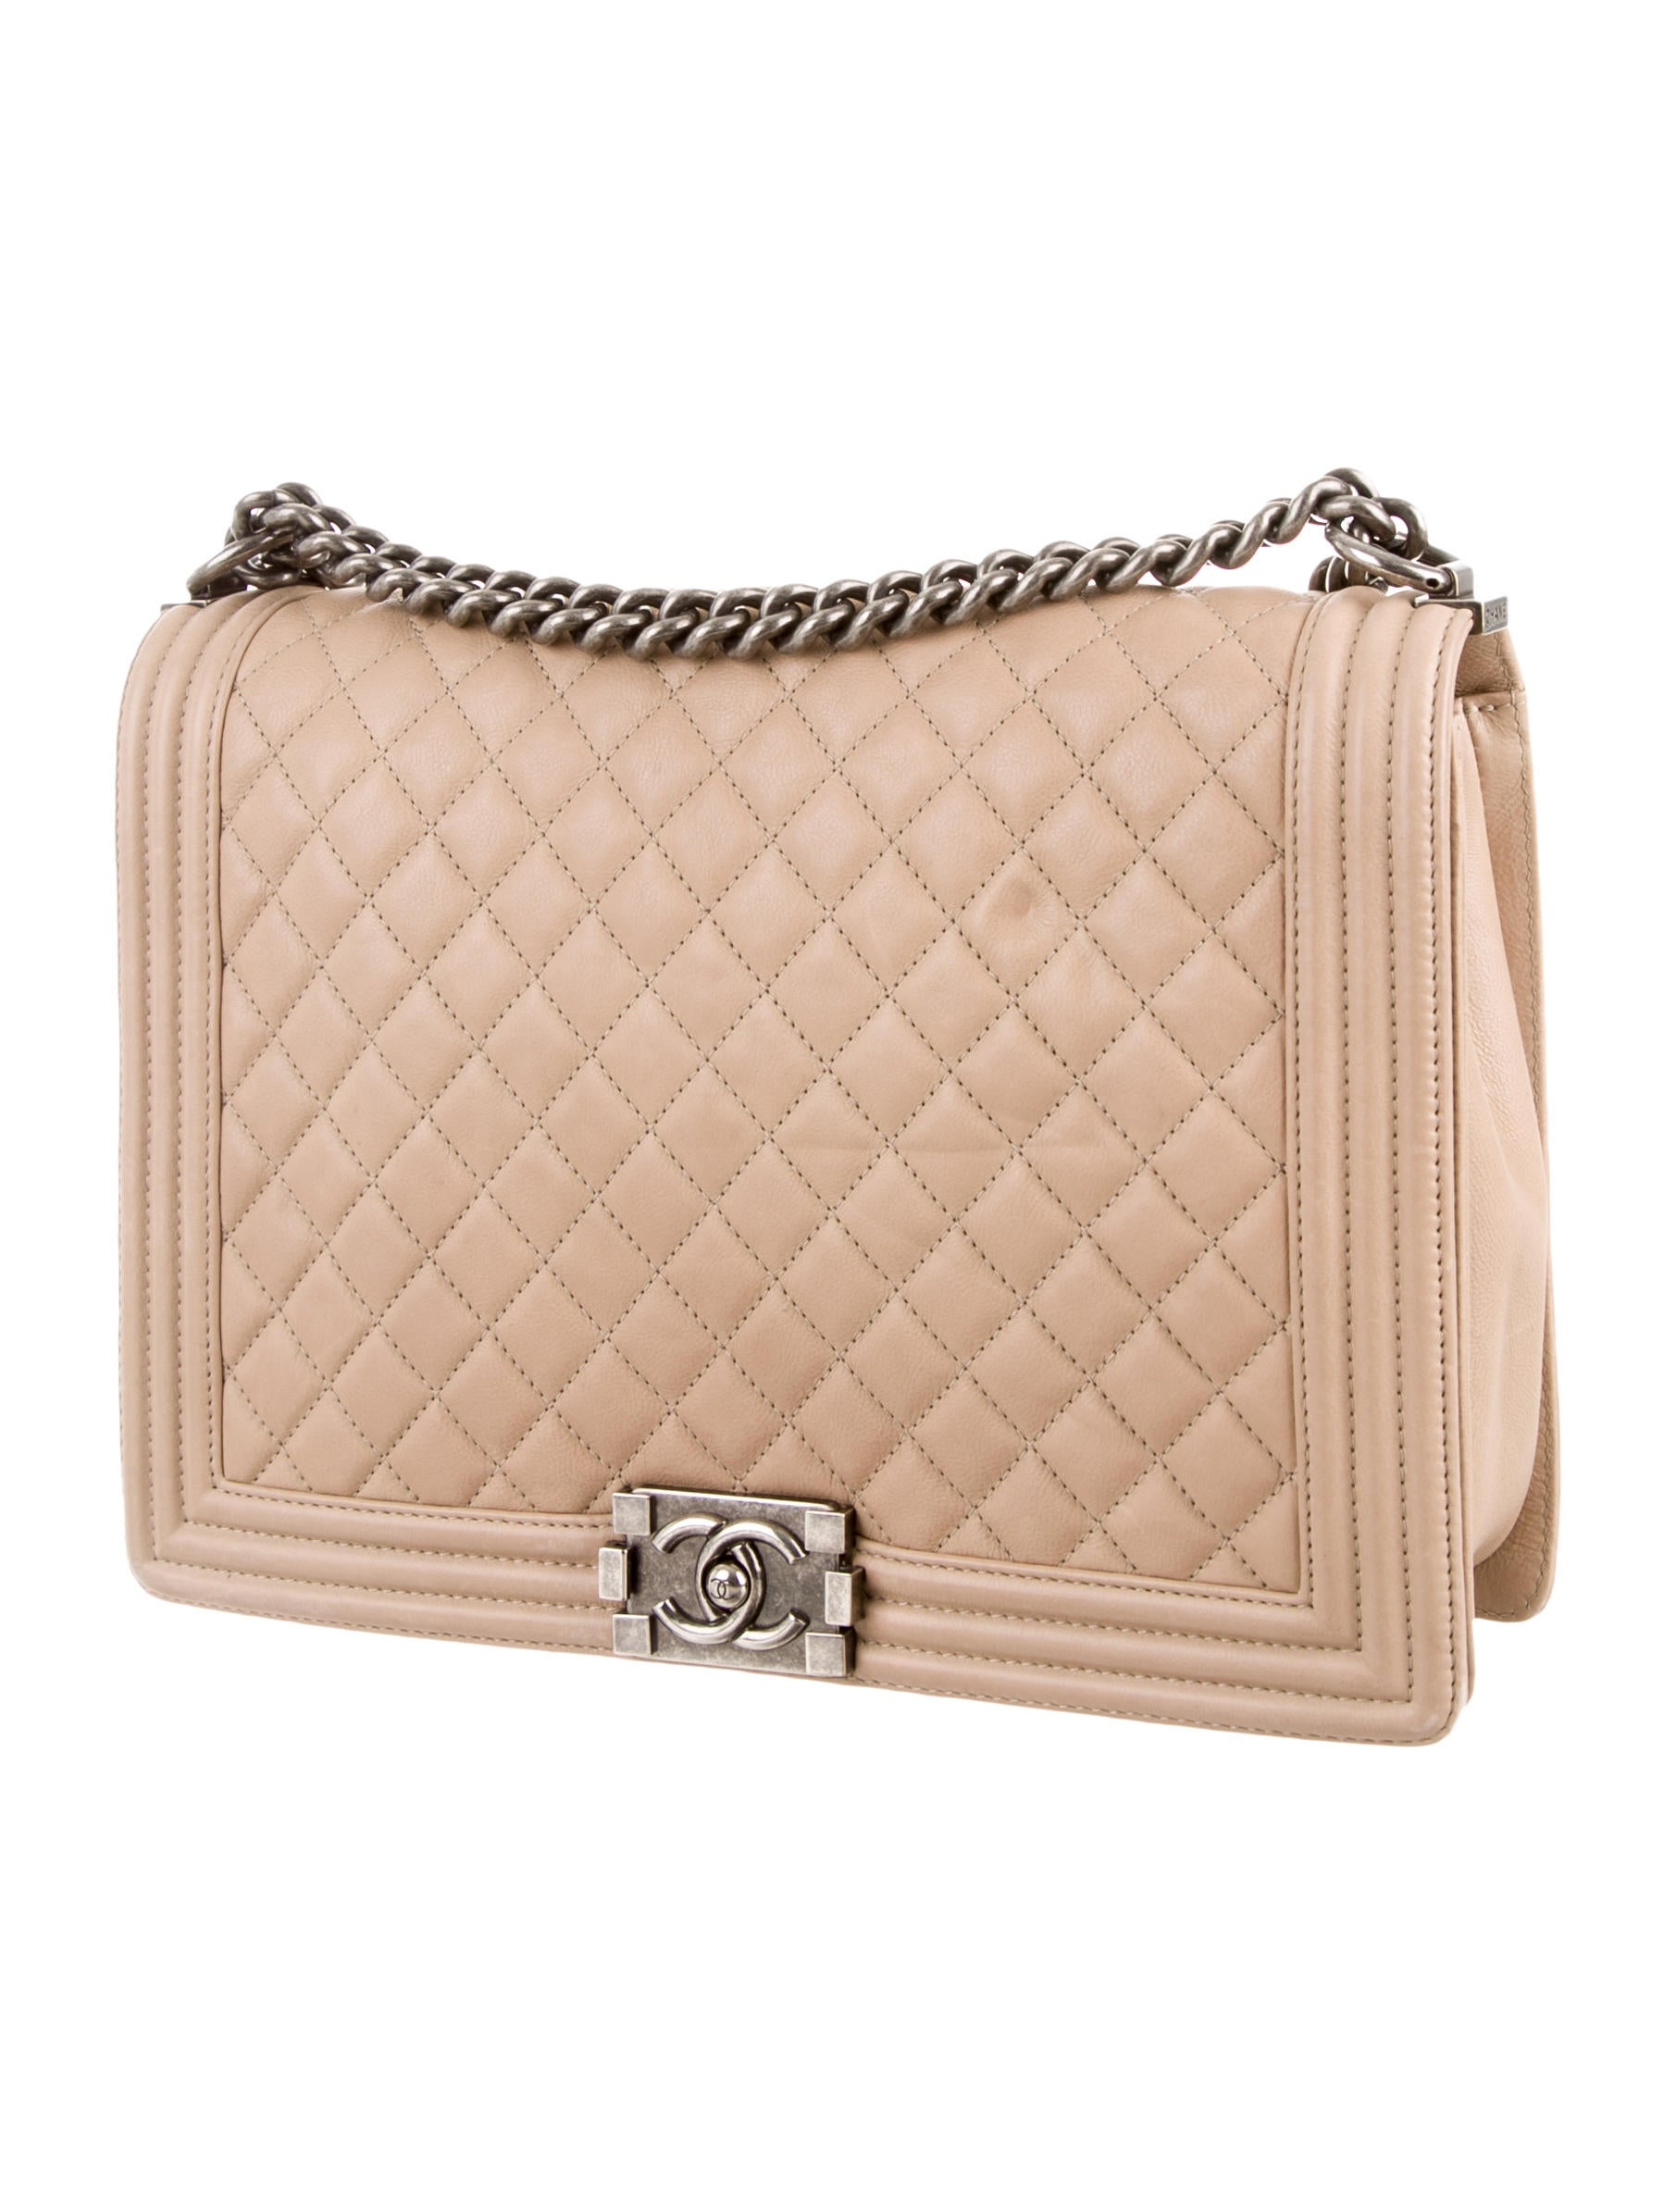 Chanel Large Quilted Boy Bag - Handbags - CHA83726